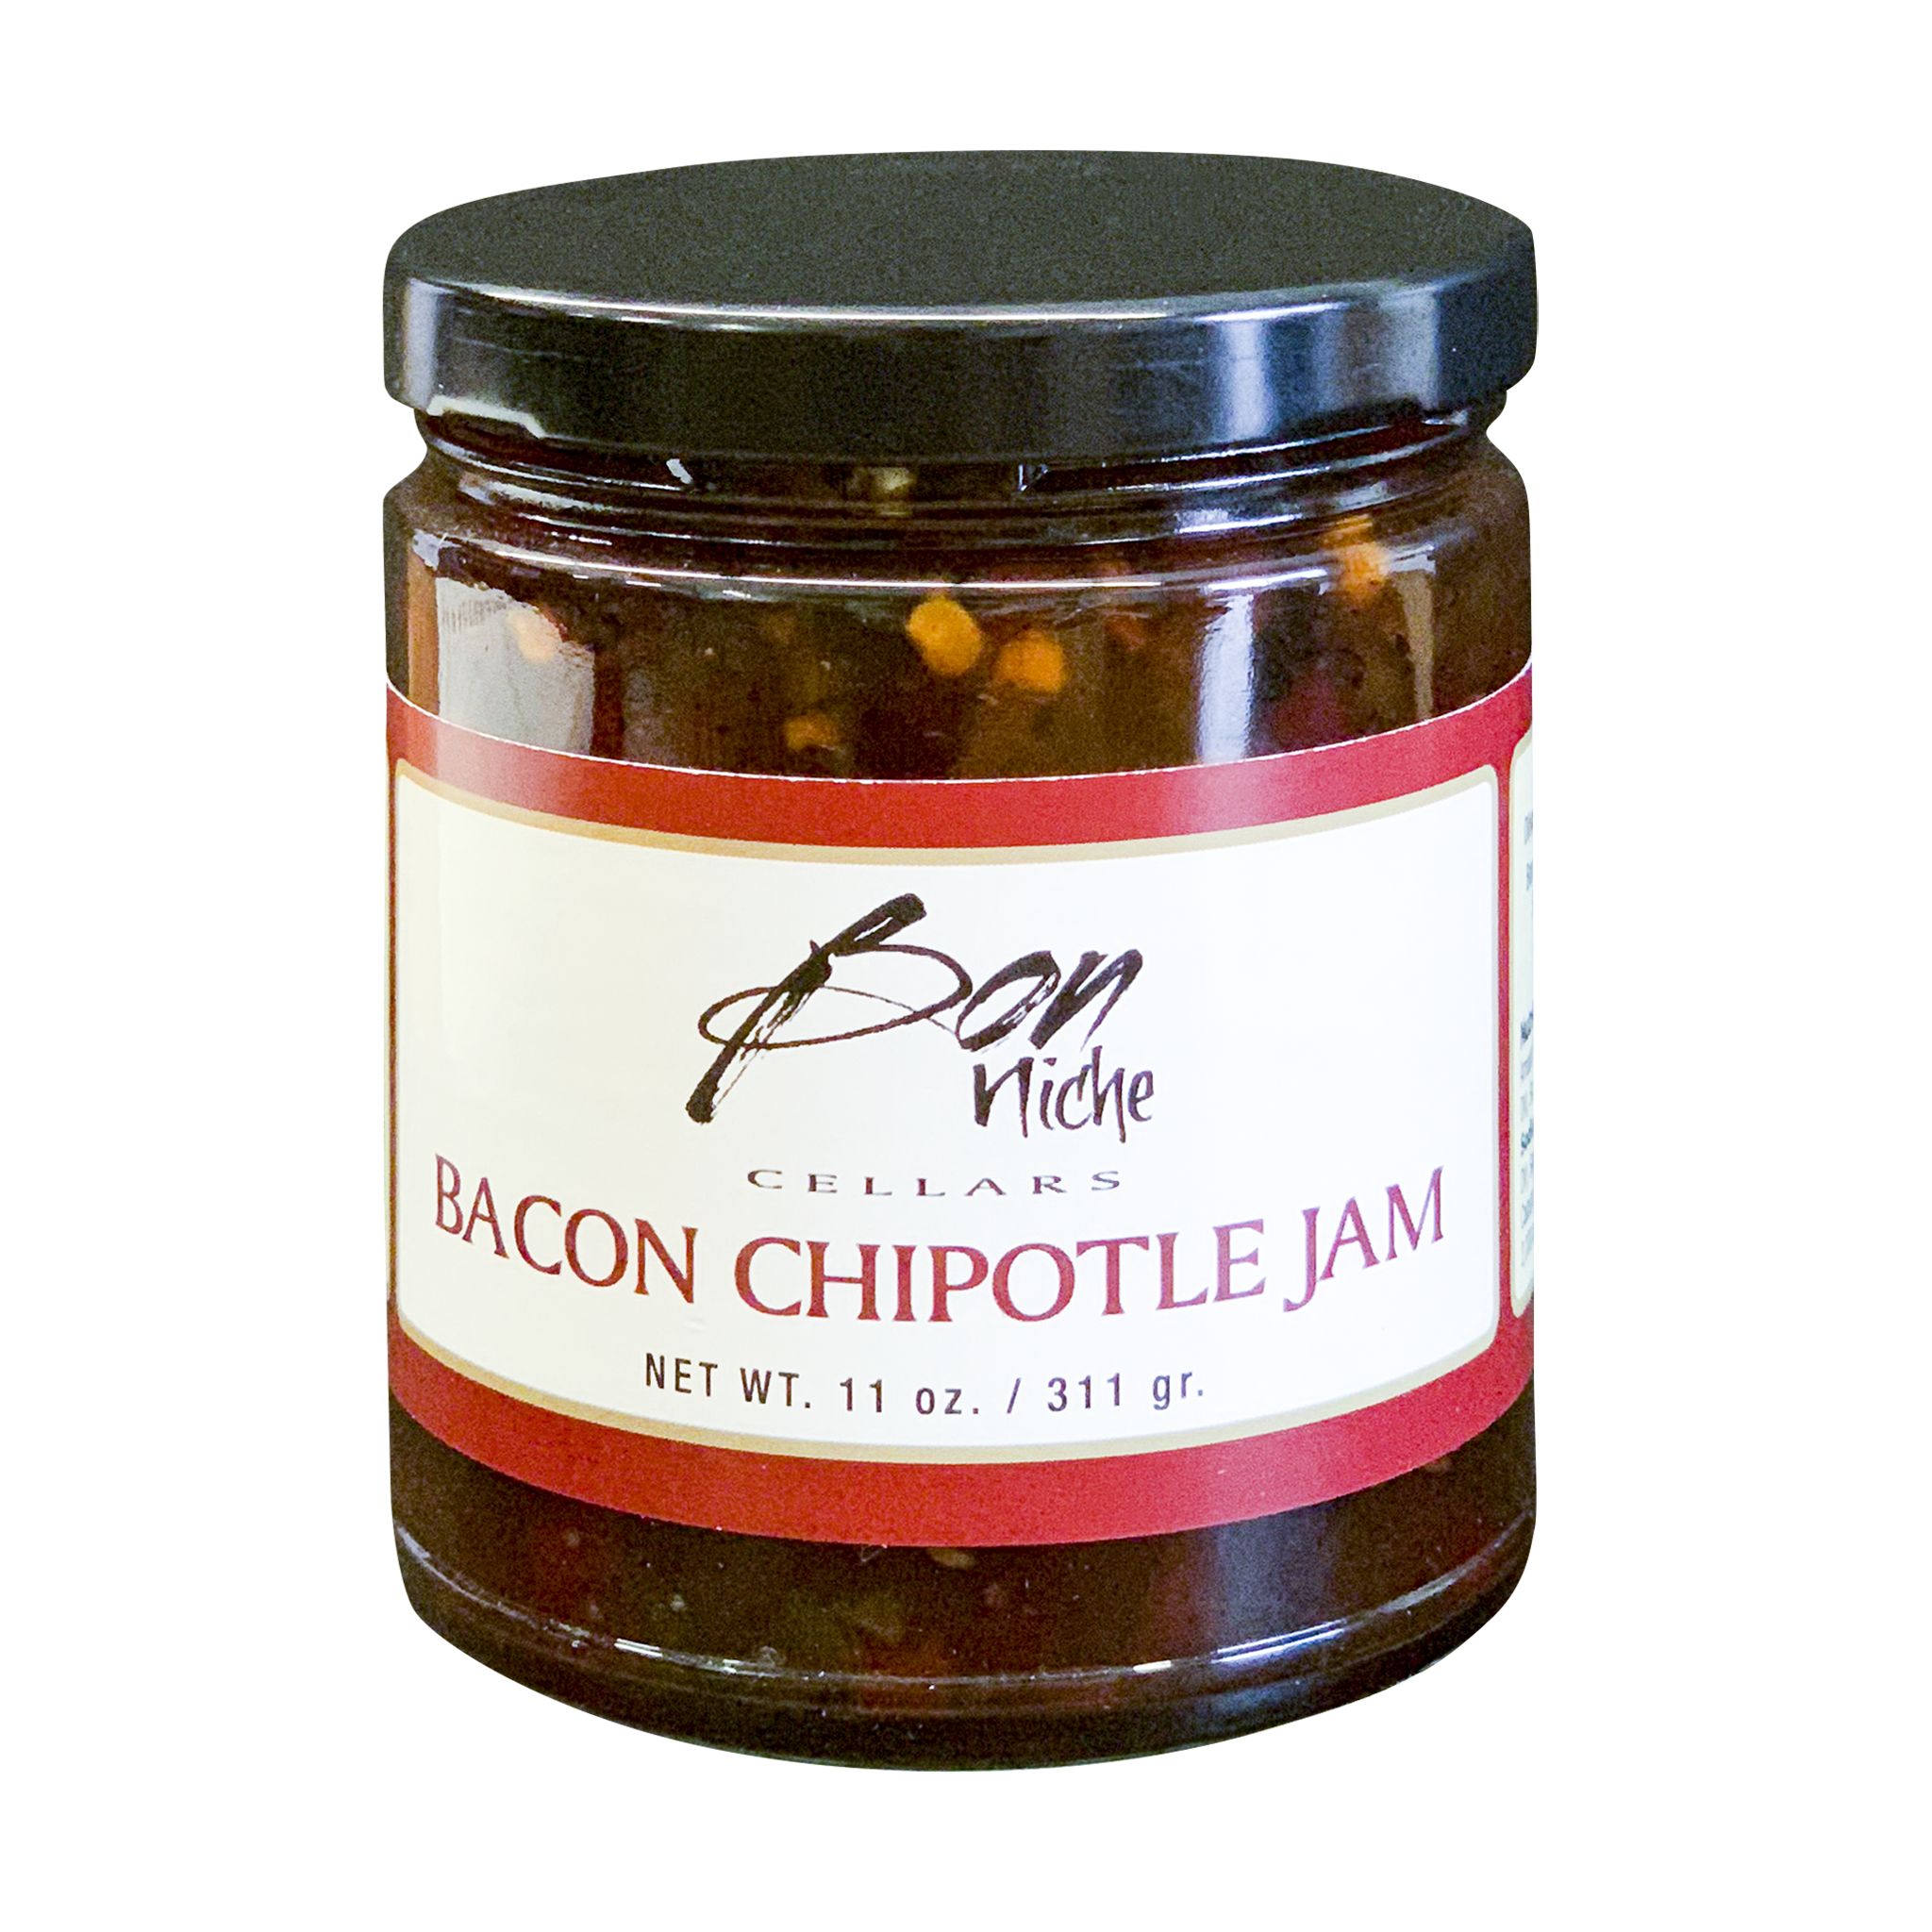 Bacon Chipotle Jam bottle